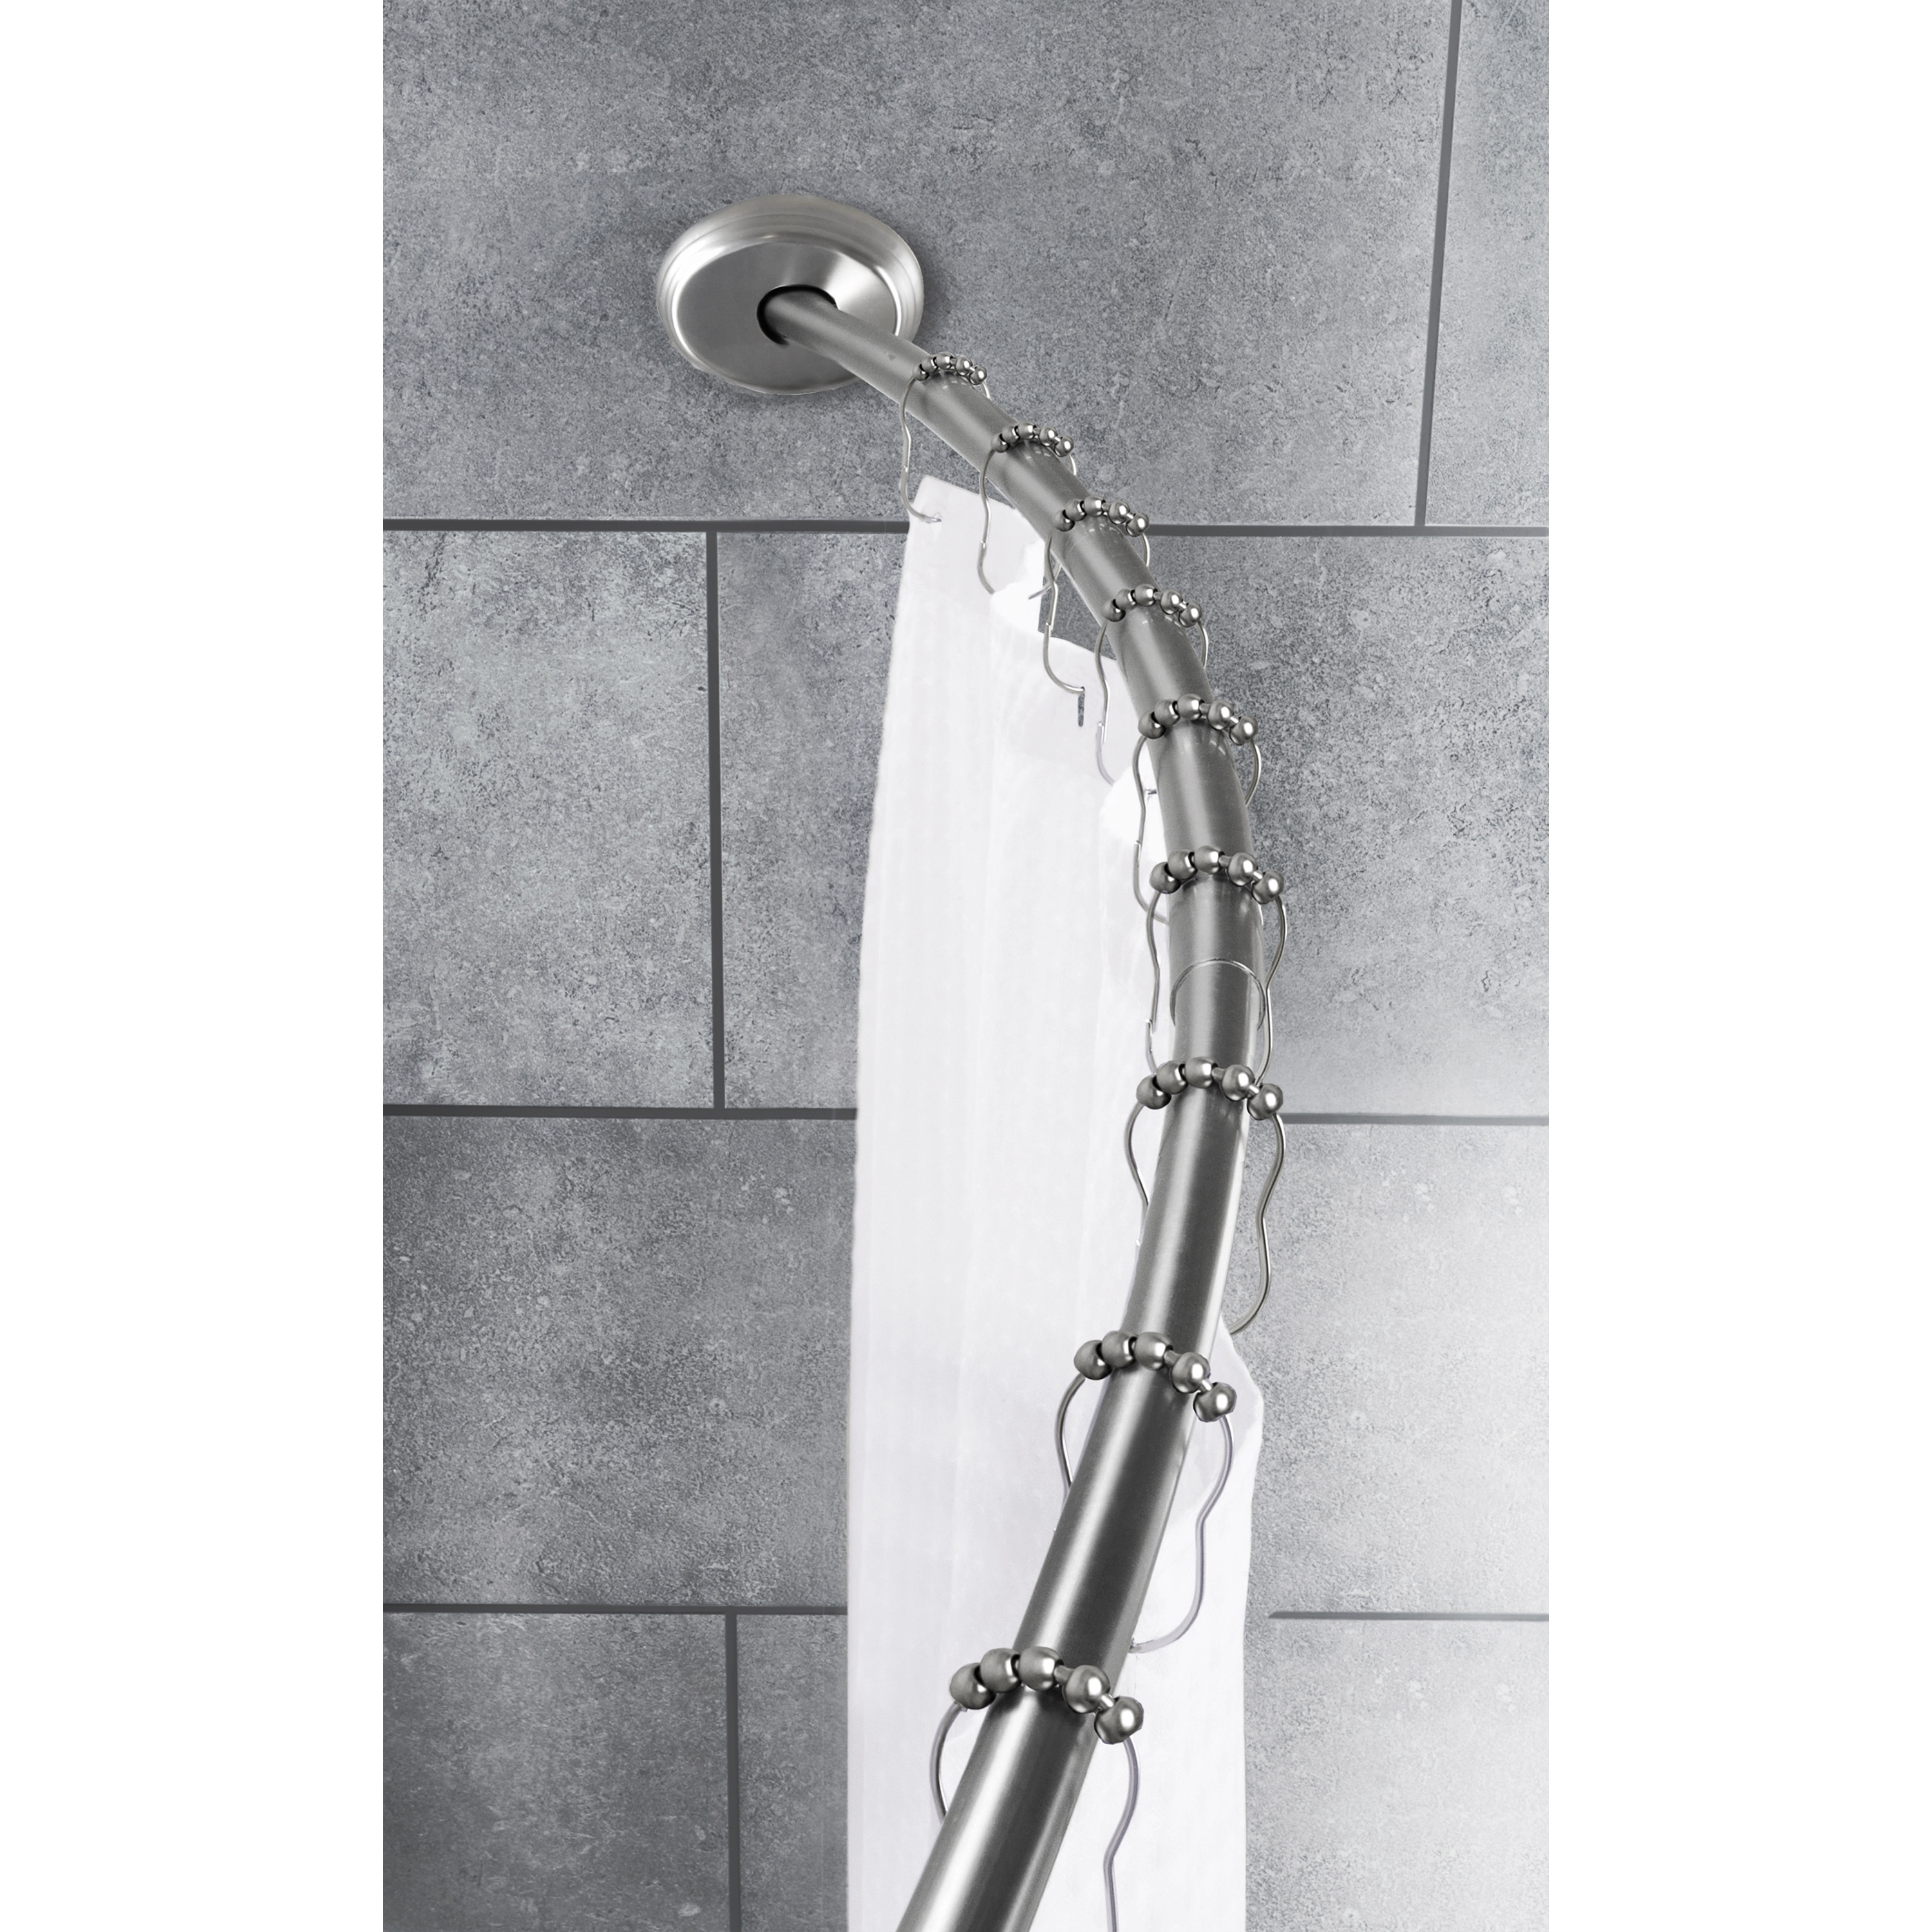 Details About Maytex Smart Rod Dual Mount Curved Shower Curtain Rod Brushed Nickel 50 Inches